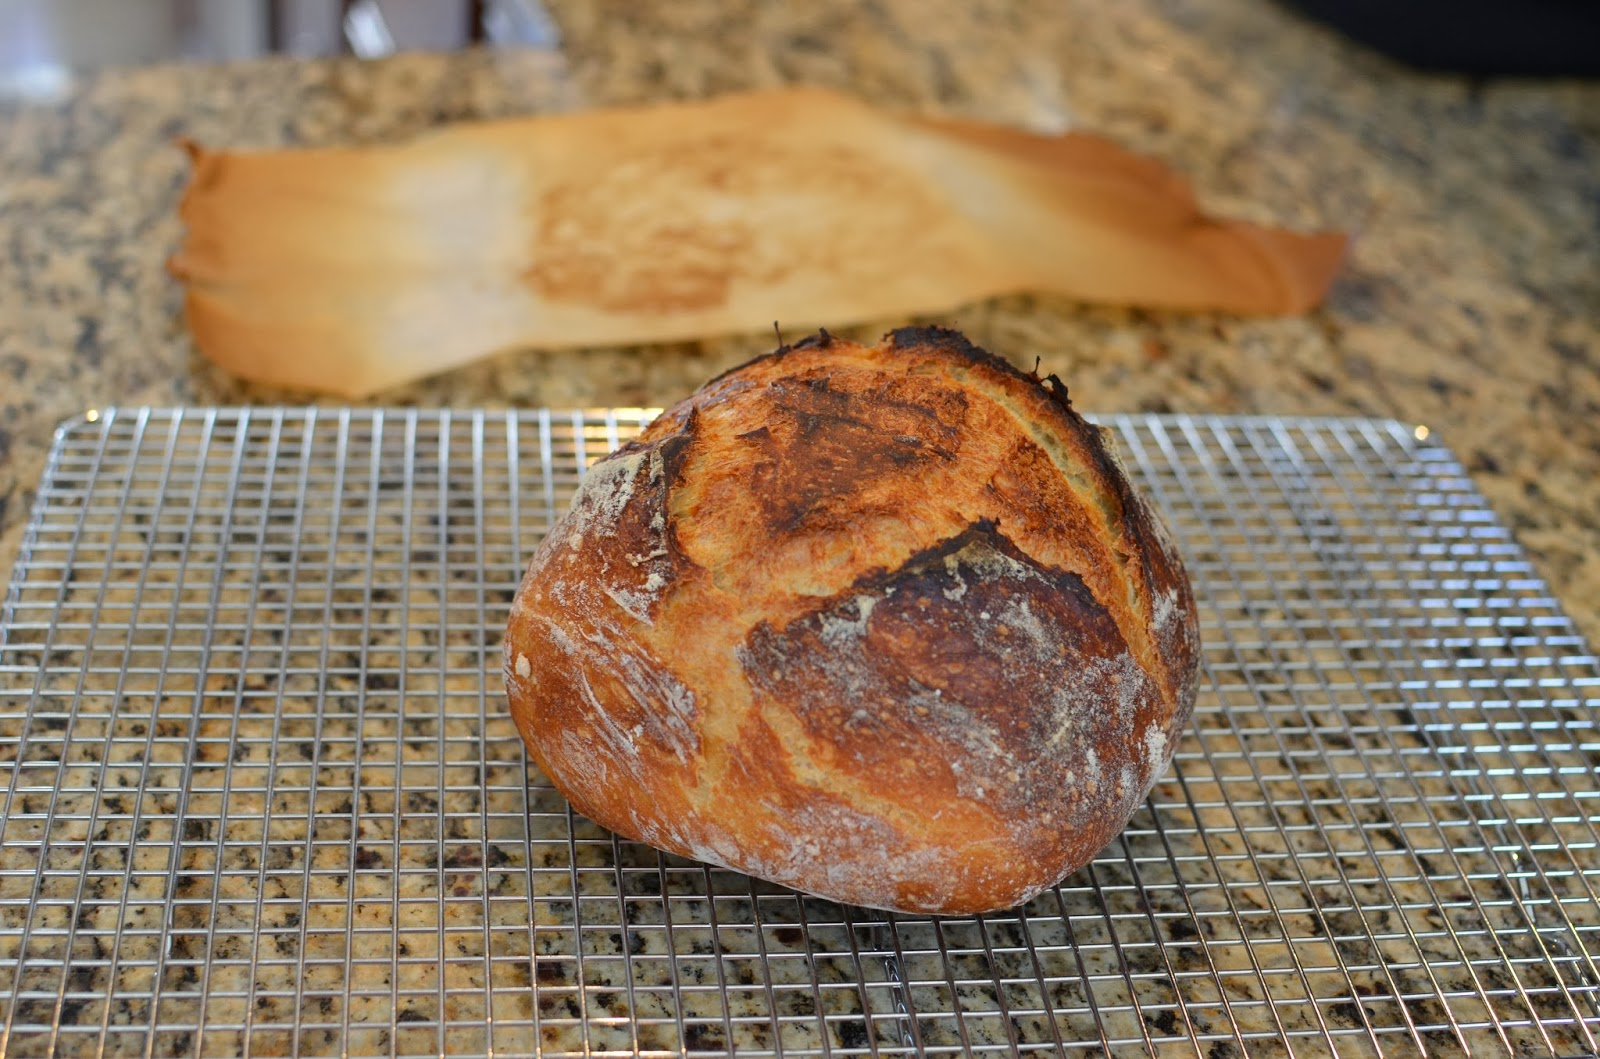 slow rise, no knead bread recipe with how-to photos - ButterYu